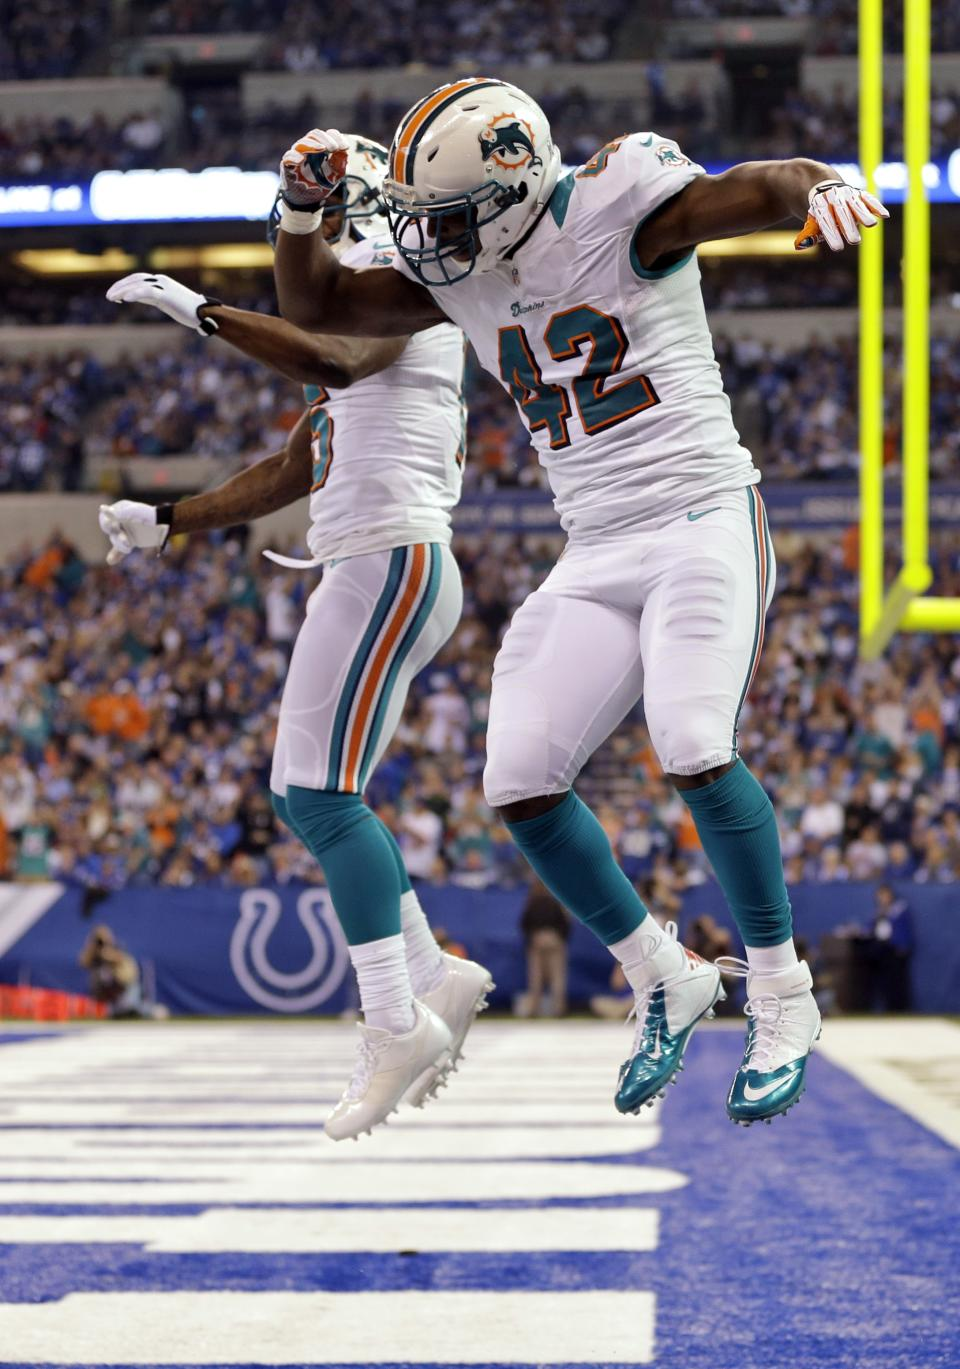 Miami Dolphins fullback Charles Clay (42) celebrates a touchdown against the Indianapolis Colts with wide receiver Davone Bess during the first half of an NFL football game in Indianapolis, Sunday, Nov. 4, 2012. (AP Photo/Darron Cummings)